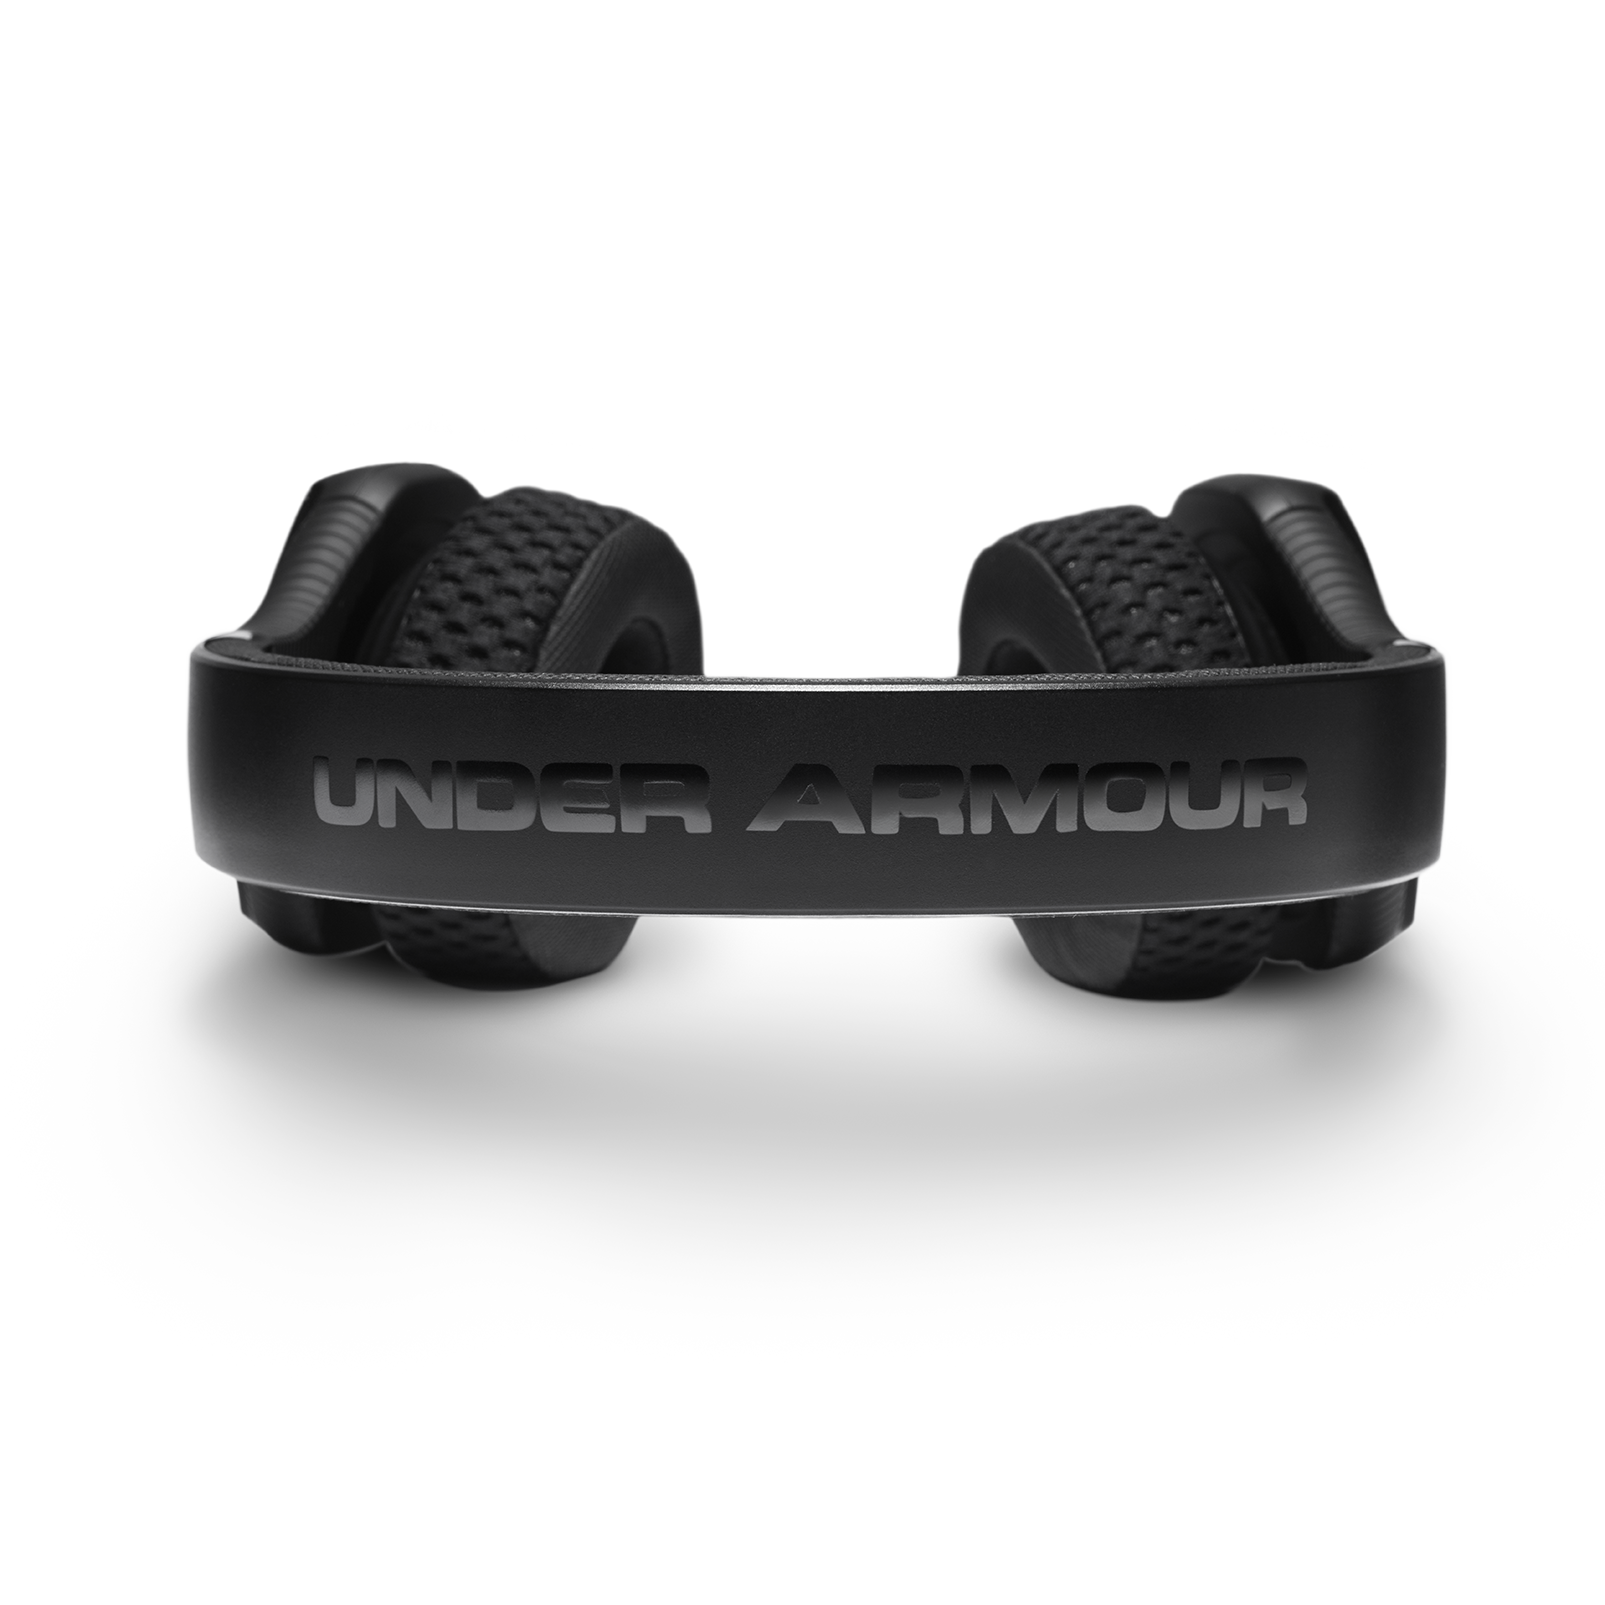 UA Sport Wireless Train – Engineered by JBL - Black - Wireless on-ear headphone built for the gym - Detailshot 4